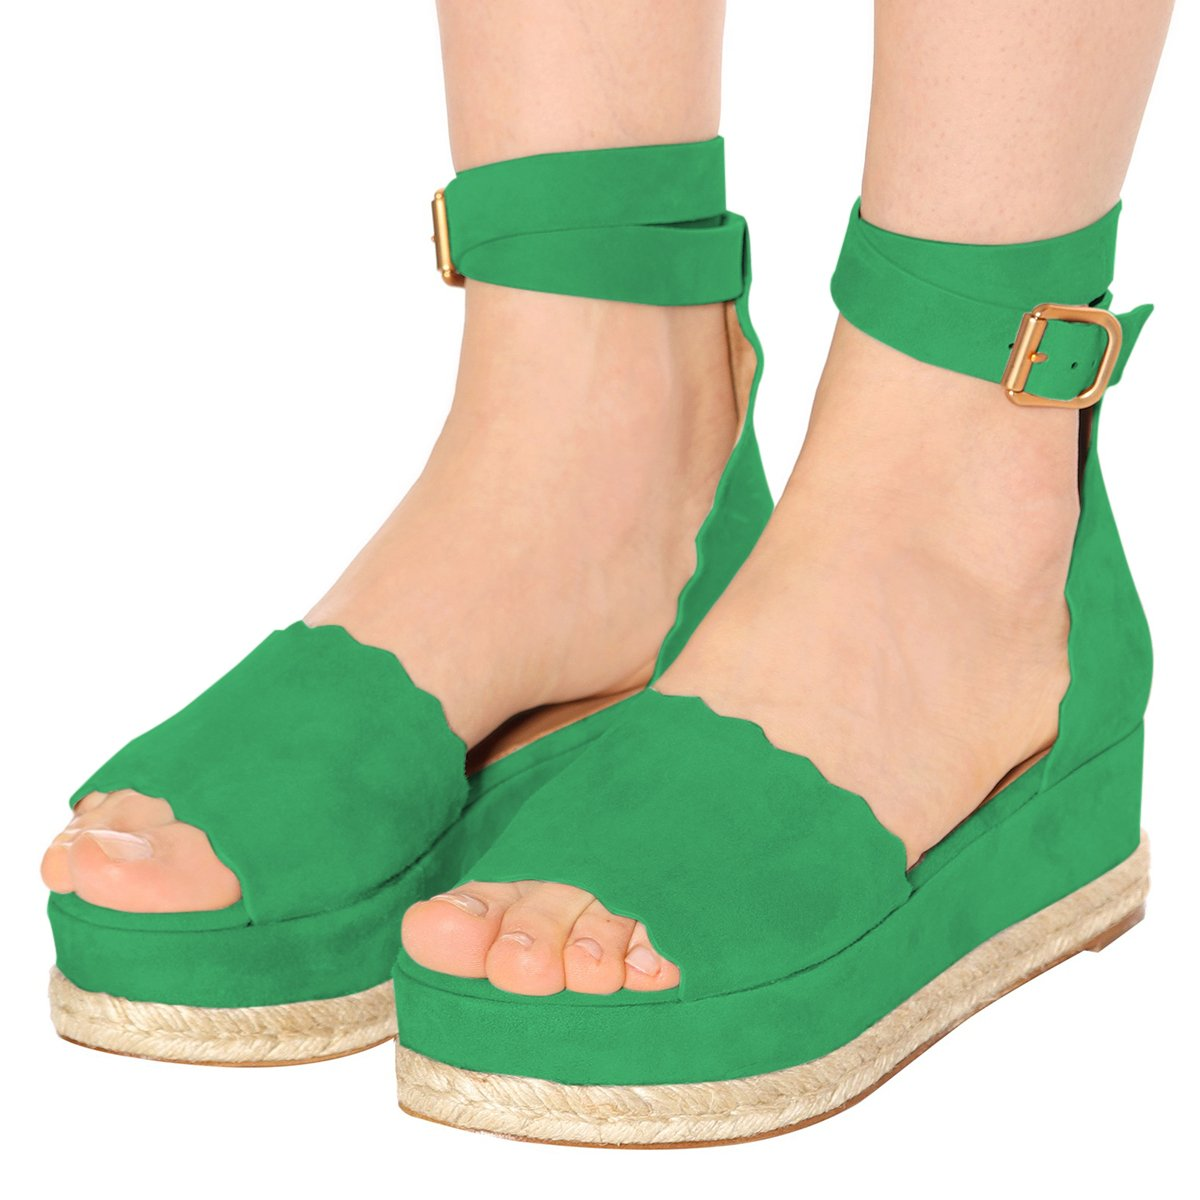 YDN Women Espadrille Peep Toe Ankle Straps Wedge Sandals Low Heels Platform Shoes with Buckle B07DCP7NPB 5 M US Green